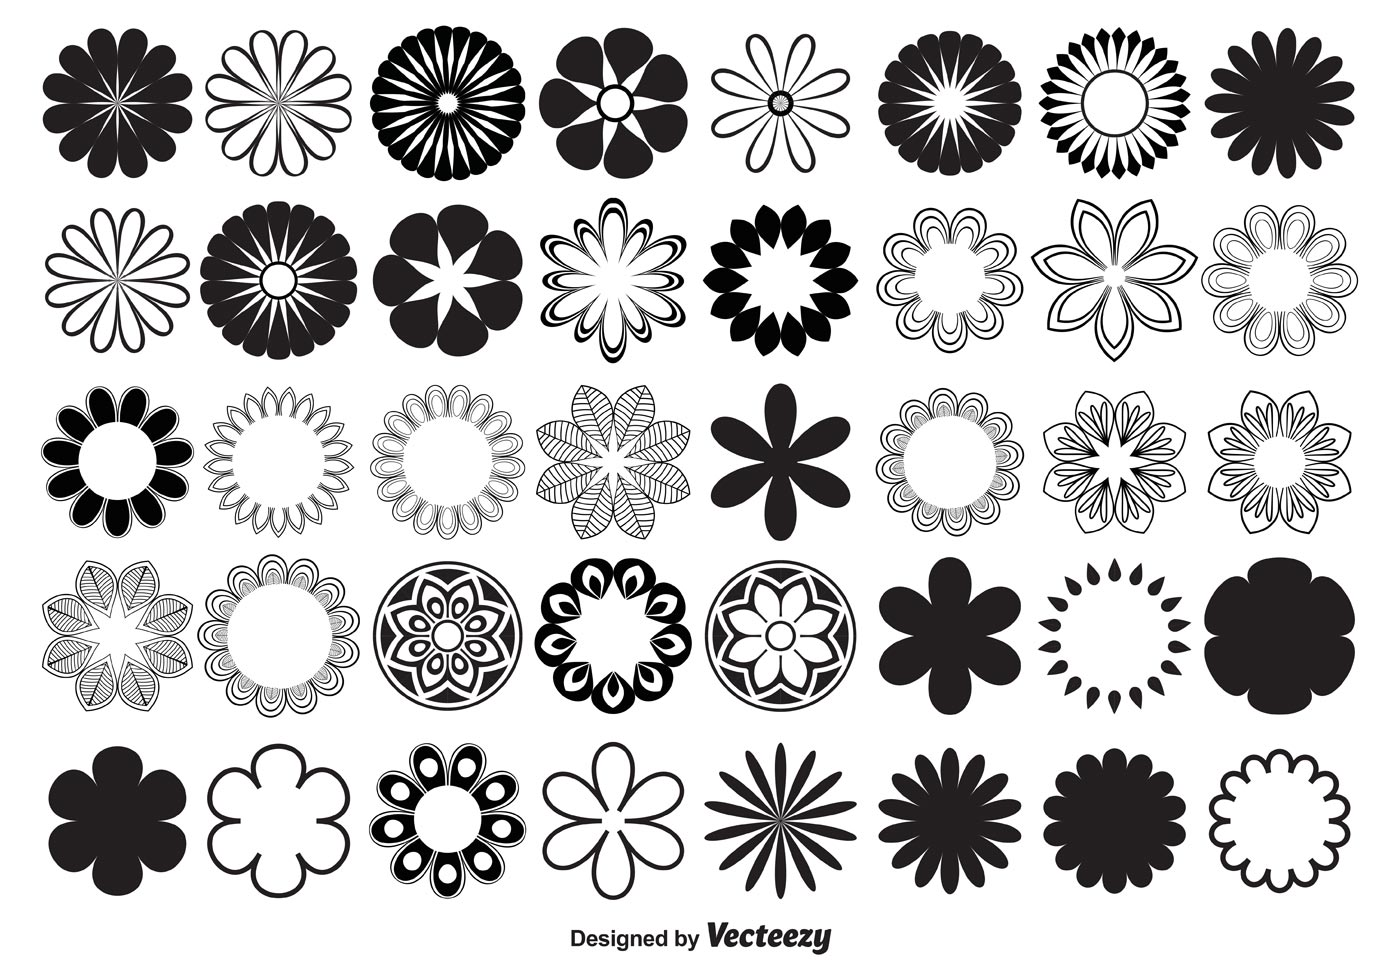 Vector Flower Shapes - Download Free Vector Art, Stock ...